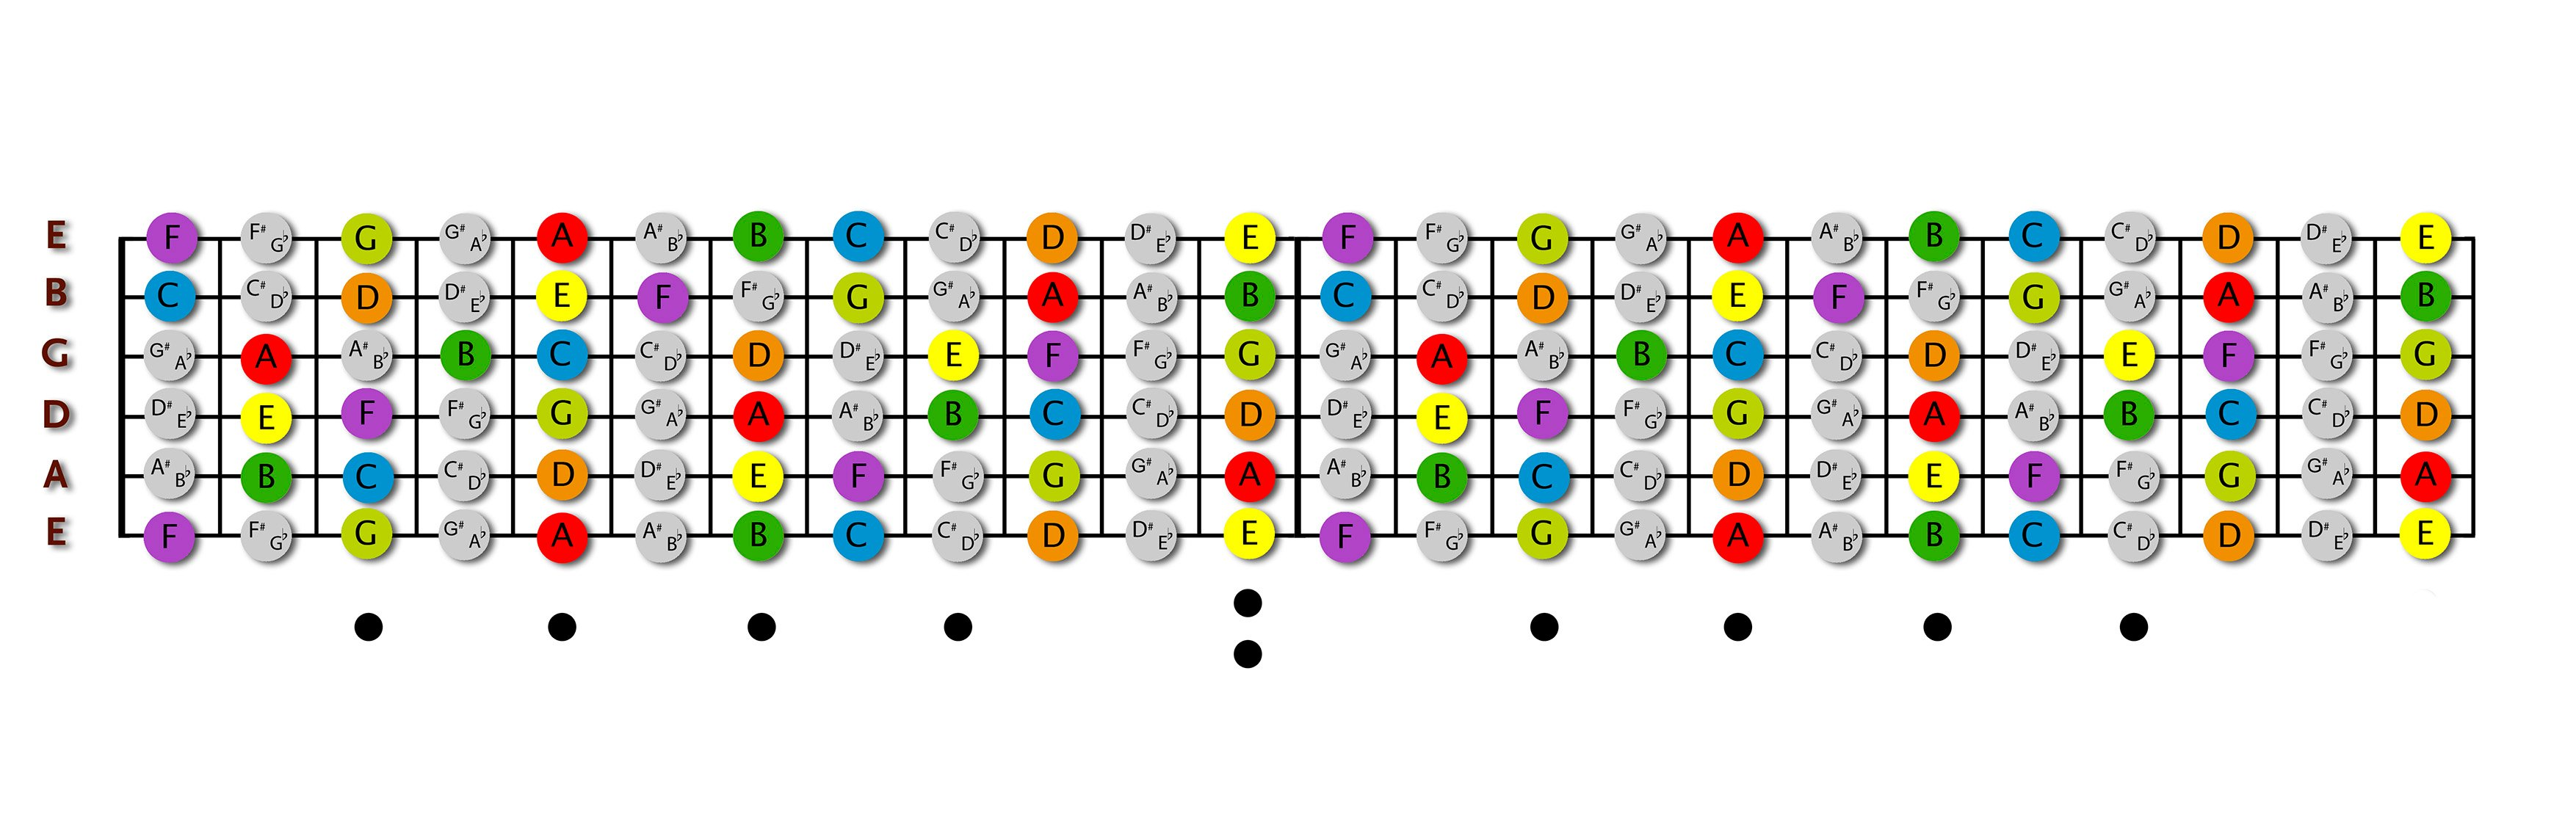 guitar stuff here 39 s a fretboard diagram to help you remember note names on each fret print. Black Bedroom Furniture Sets. Home Design Ideas